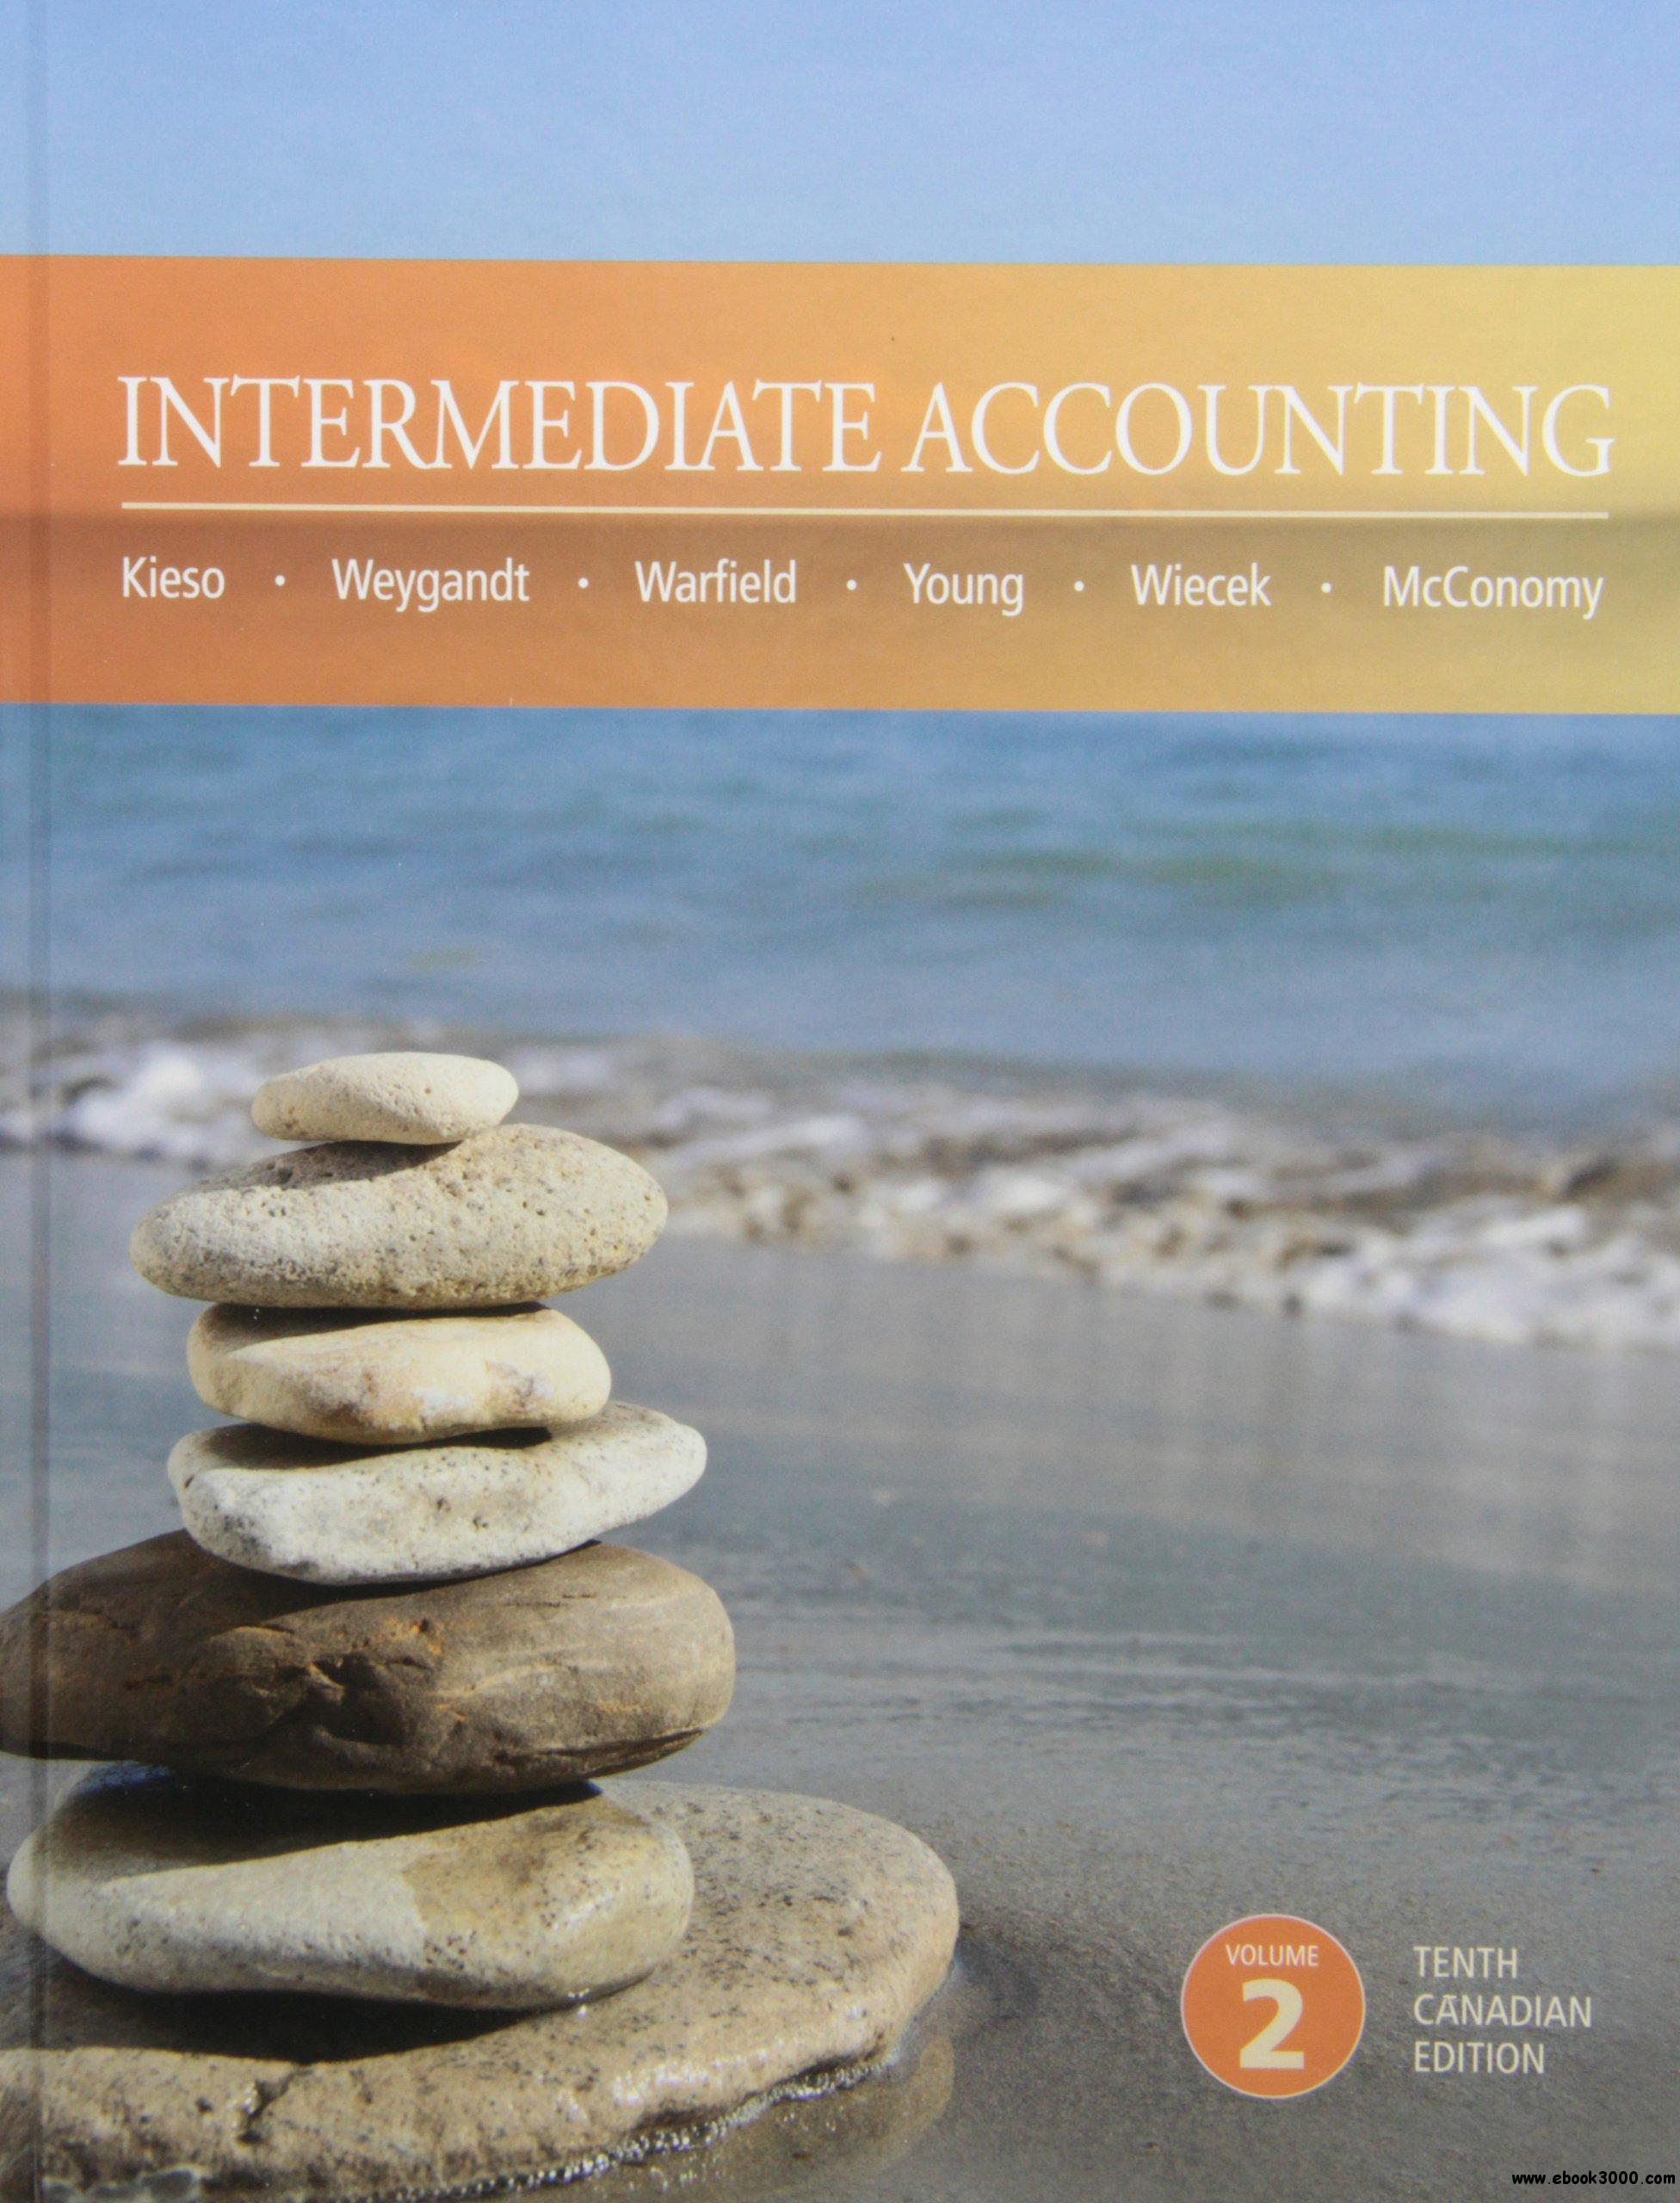 intermediate accounting 9th canadian edition solutions Tue, 12 jun 2018 15:21:00 gmt solutions for intermediate accounting pdf - document read online intermediate accounting 13th edition solutions manual.